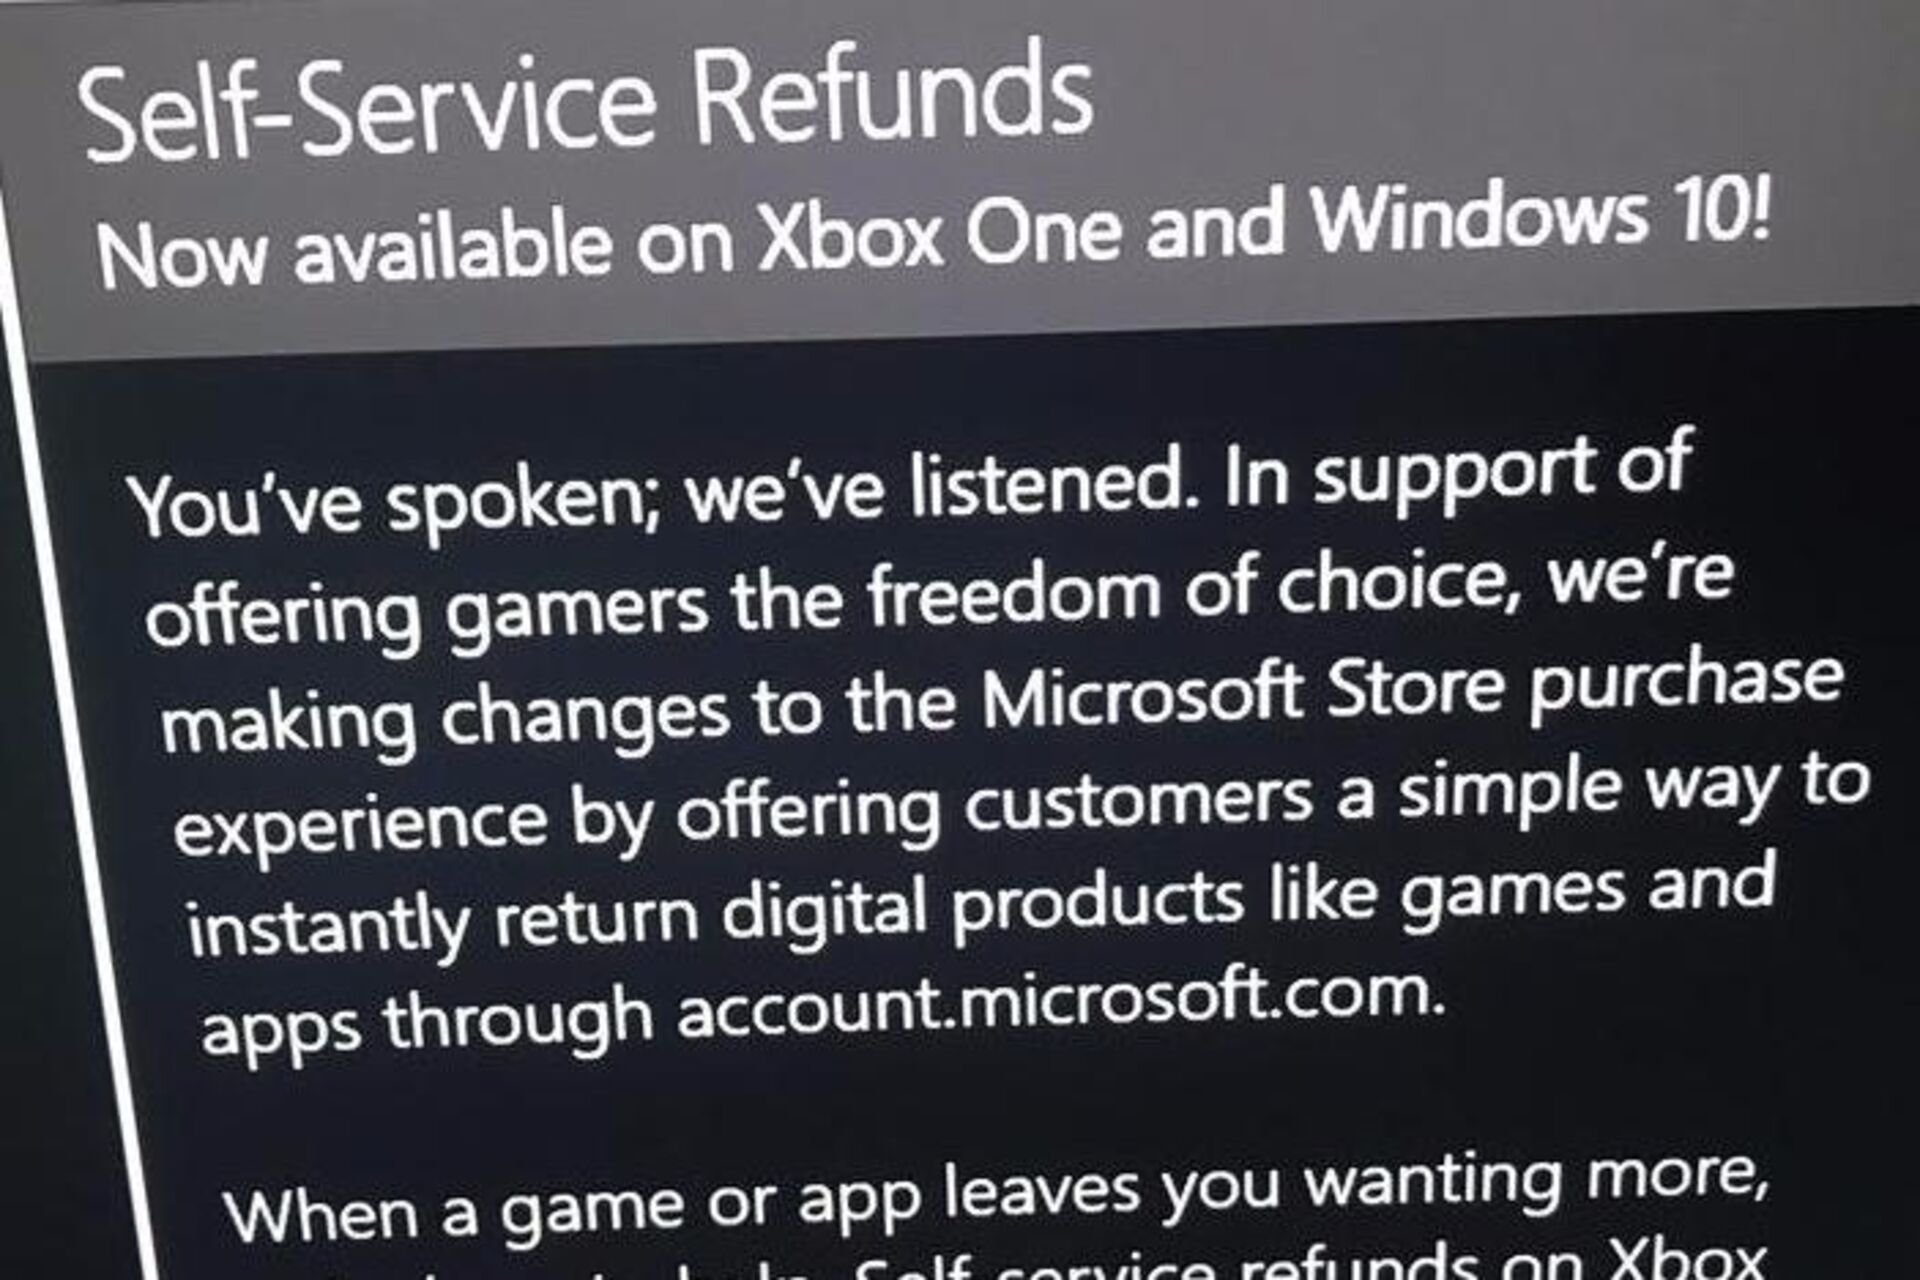 Microsoft is adding self-service refunds for digital Xbox